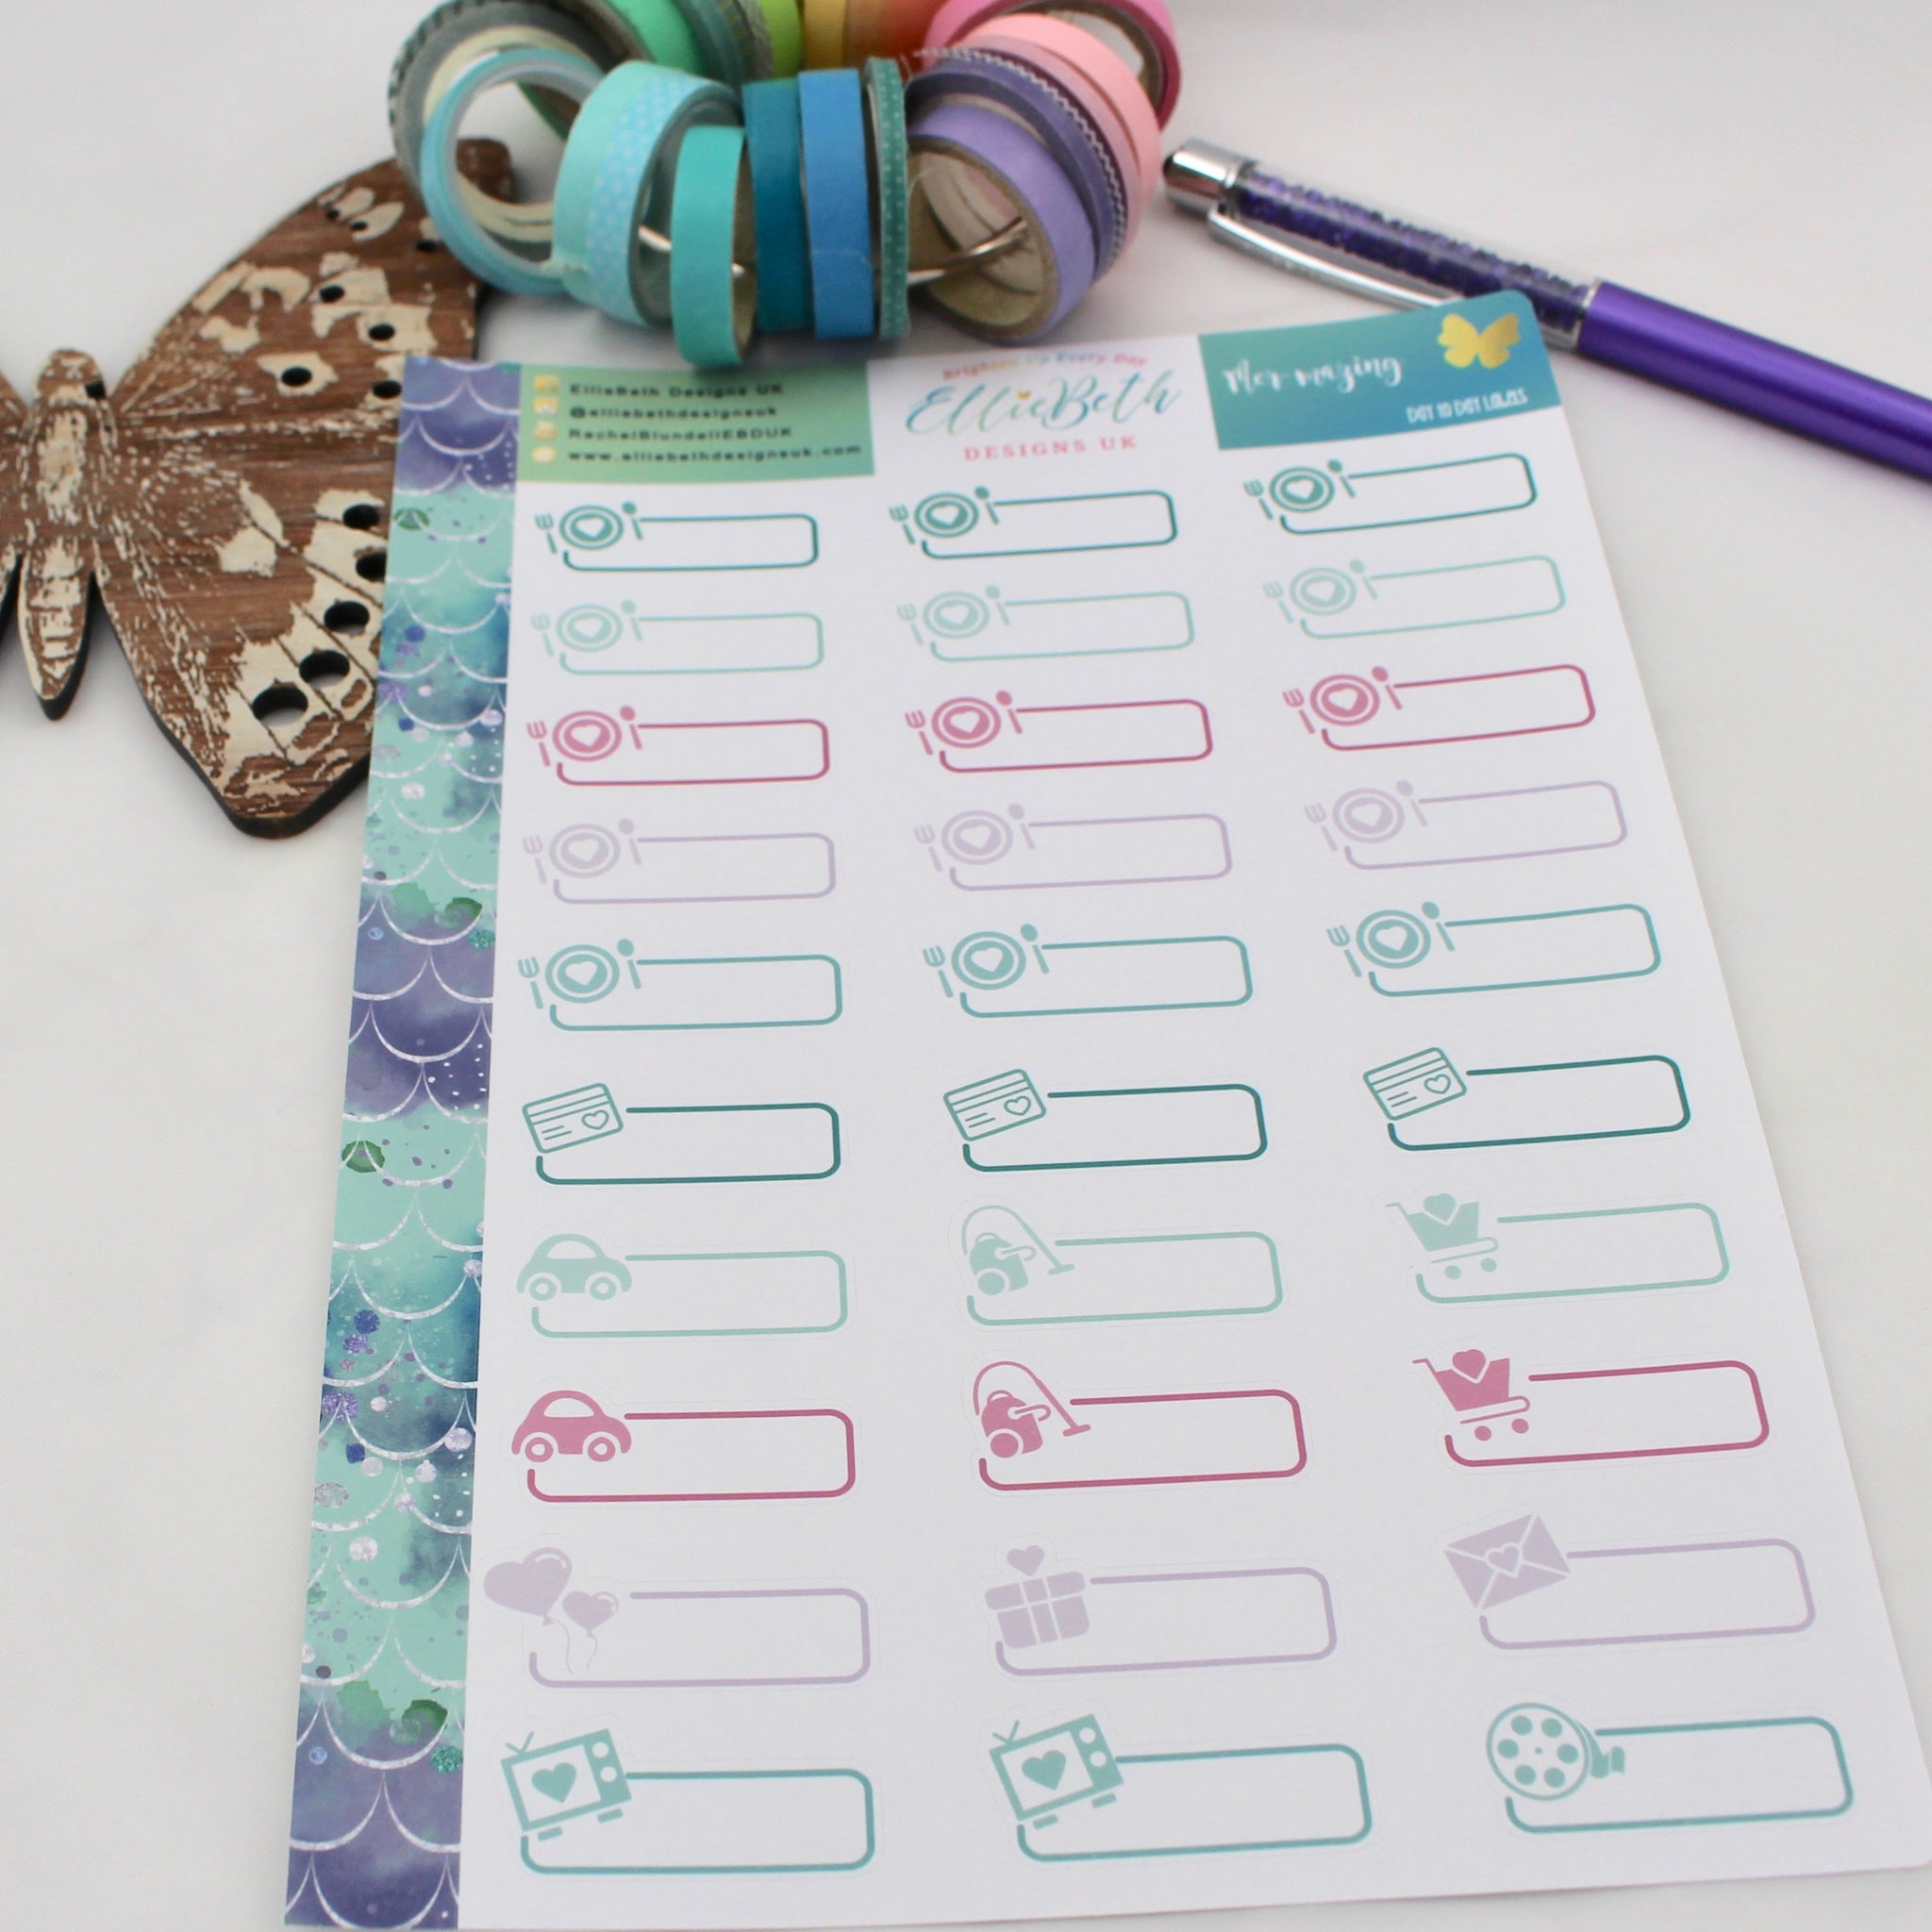 Mer-mazing - Day to Day Labels - A5 binder ready planner stickers - EllieBeth Designs UK